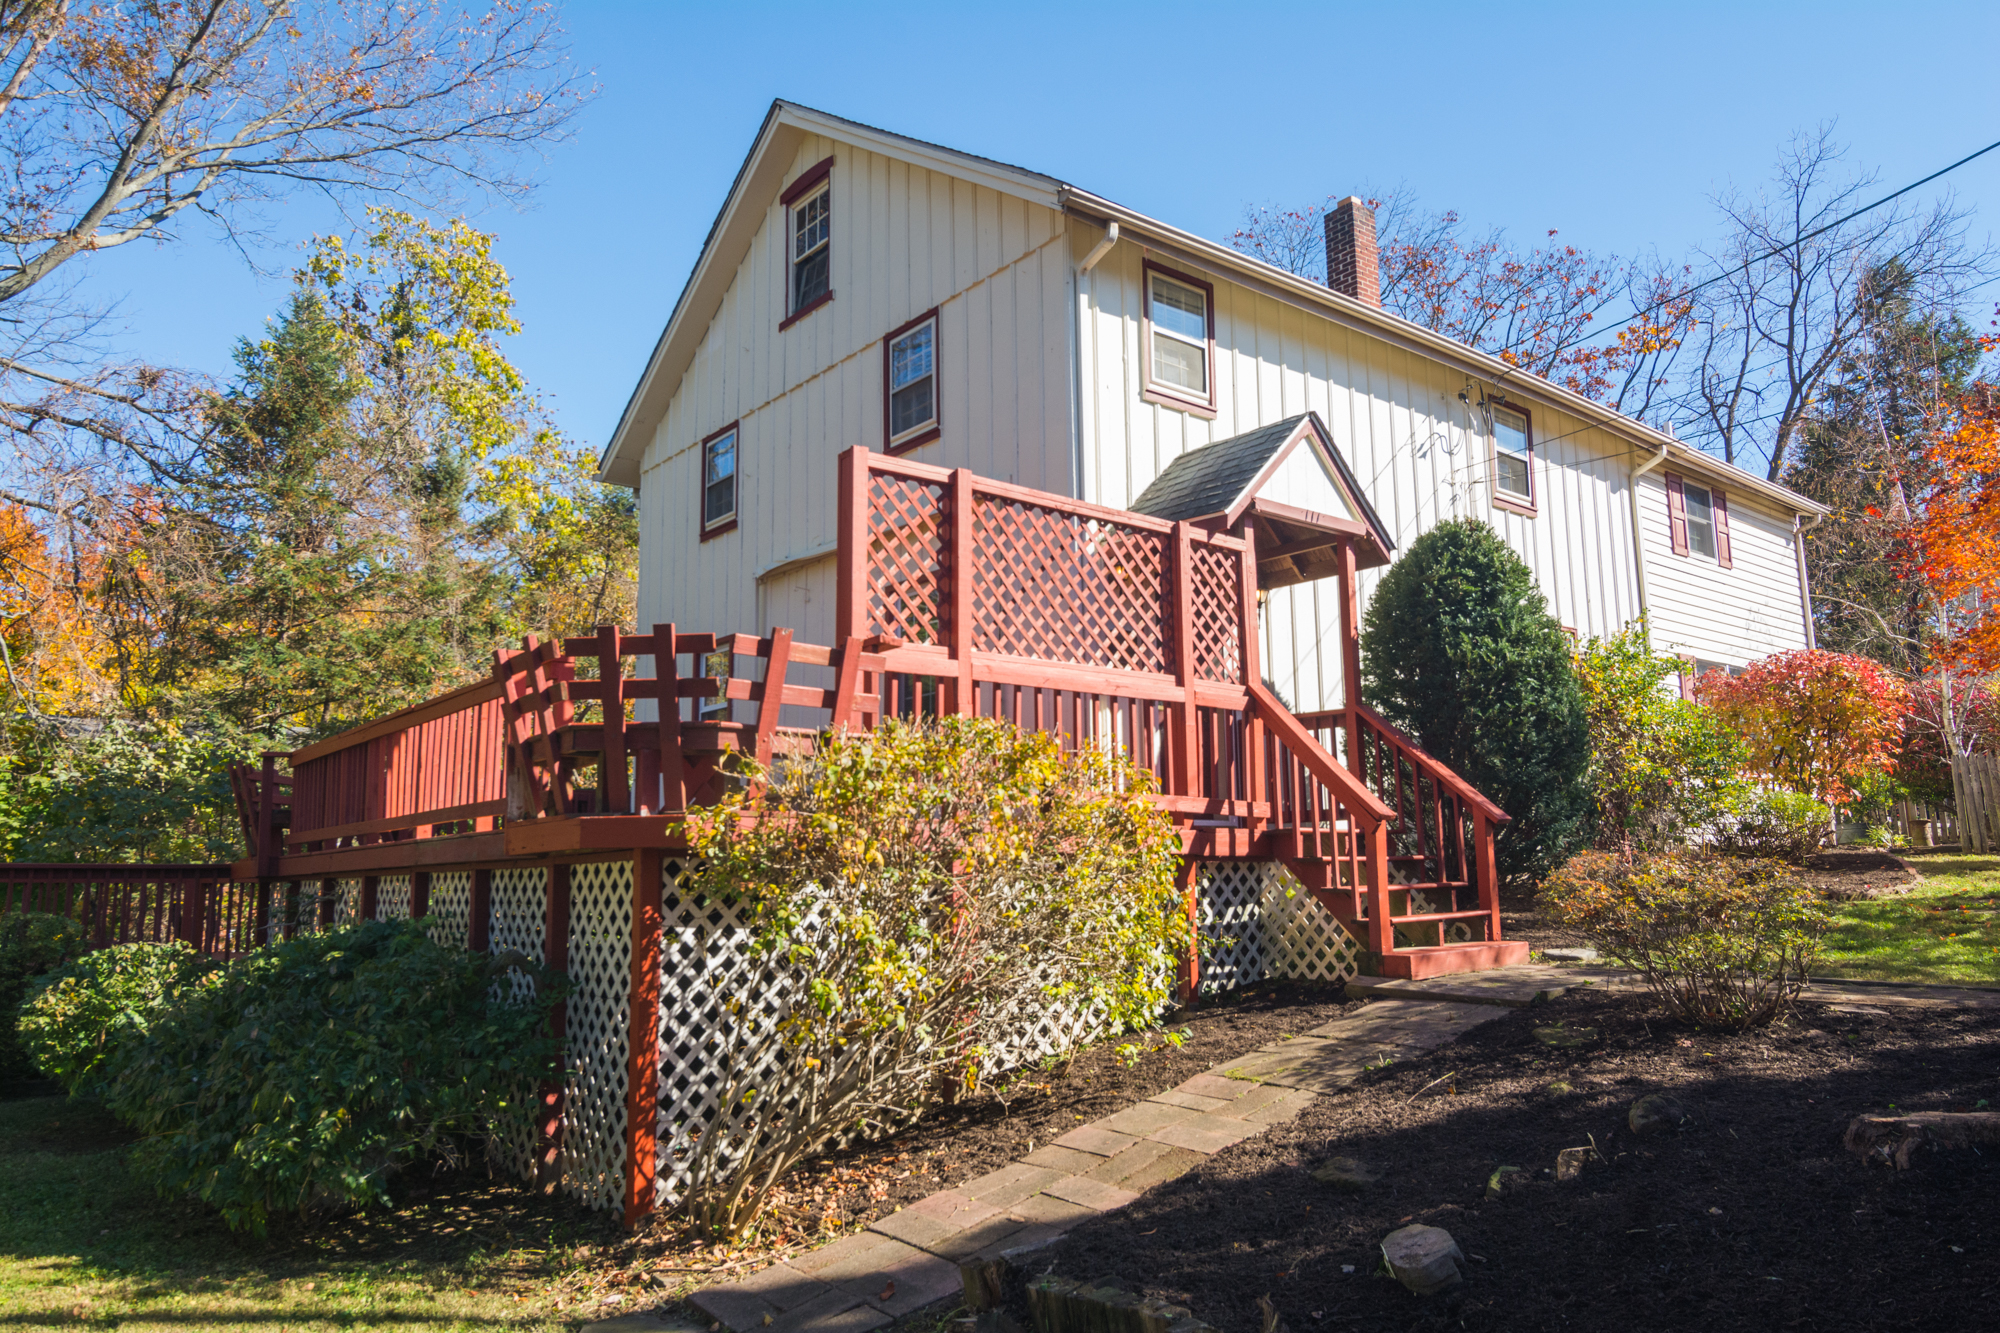 111 N Ridge Ave, Ambler, Pa 19002